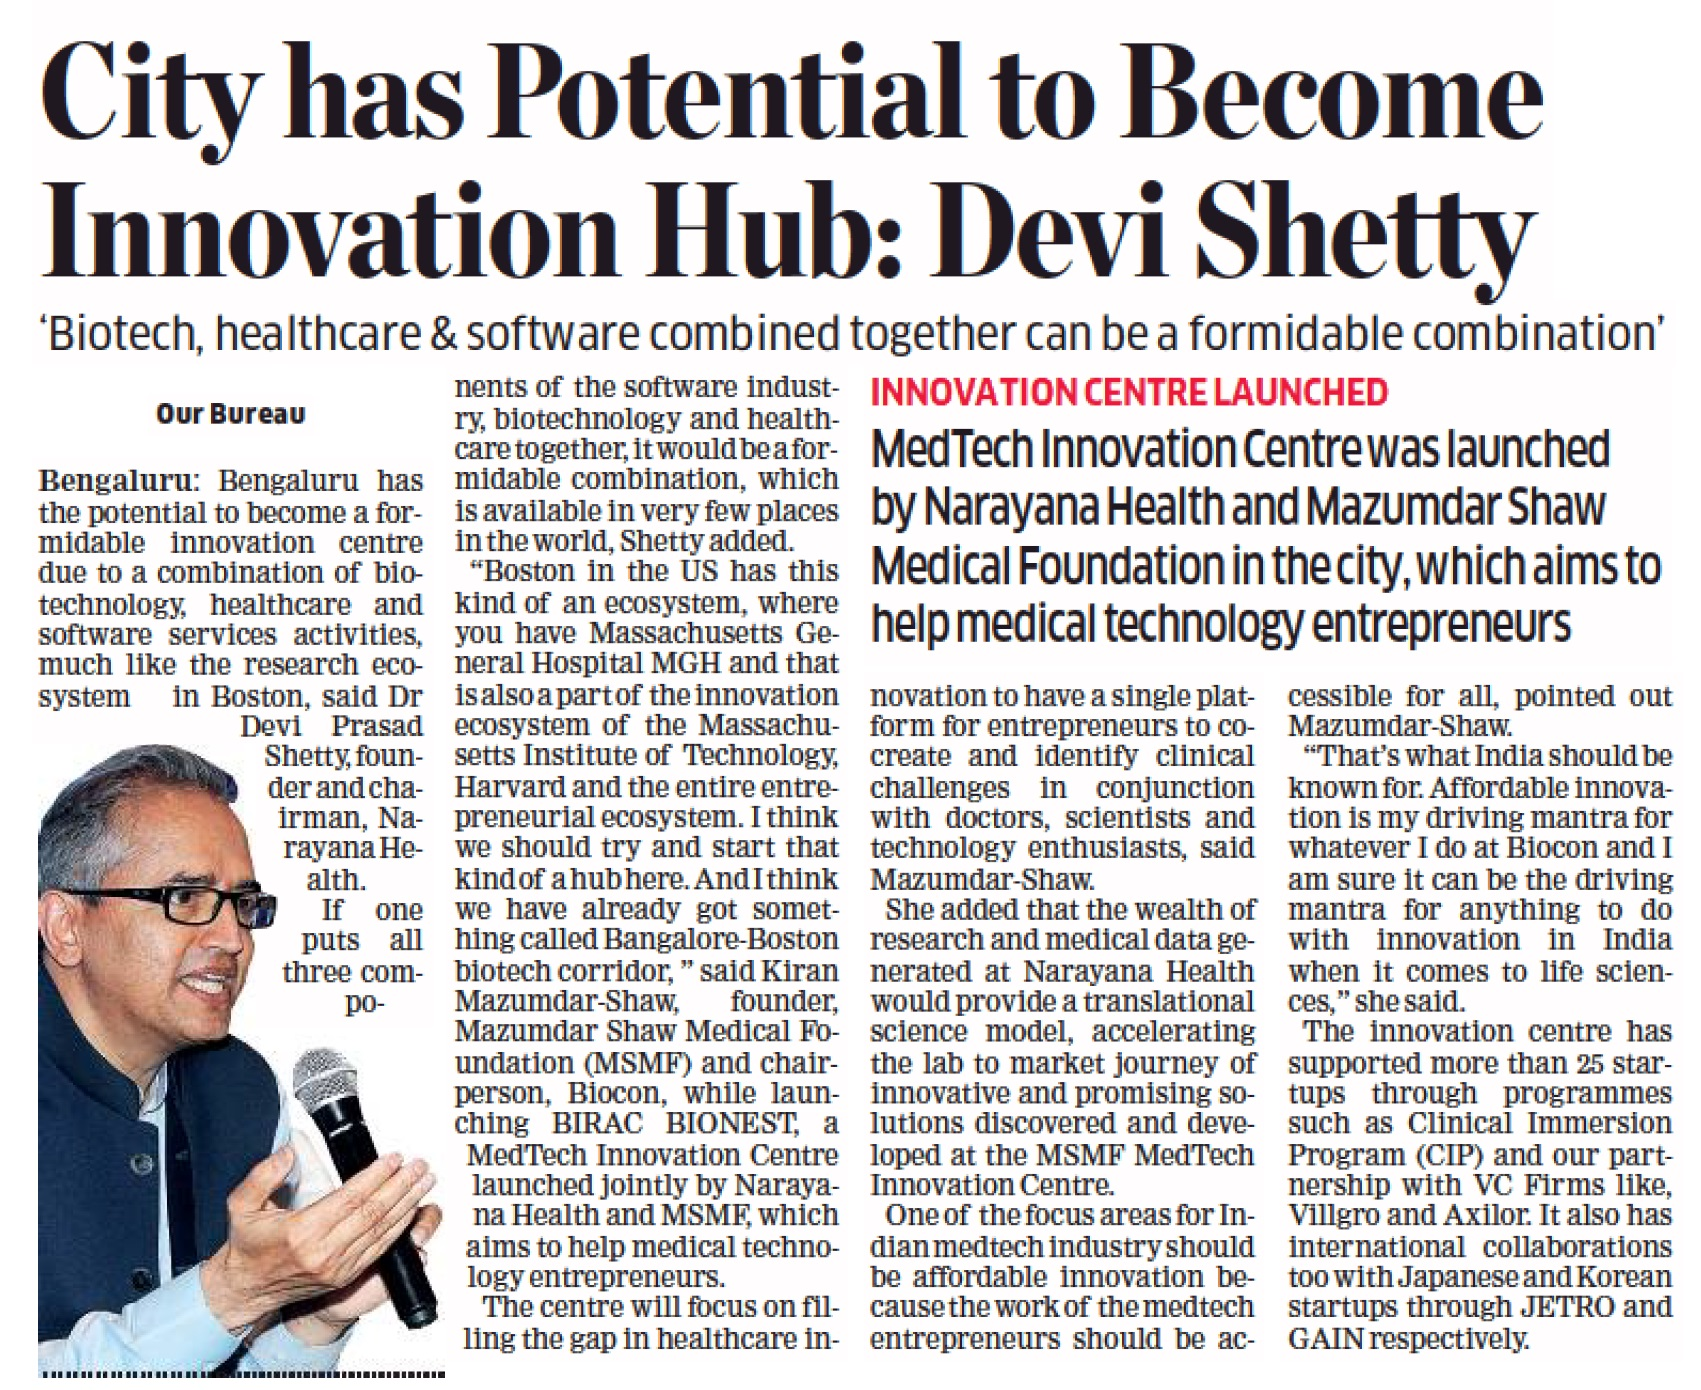 Launch of MSMF MedTech Innovation Centre at Narayana Health City, Bangalore.